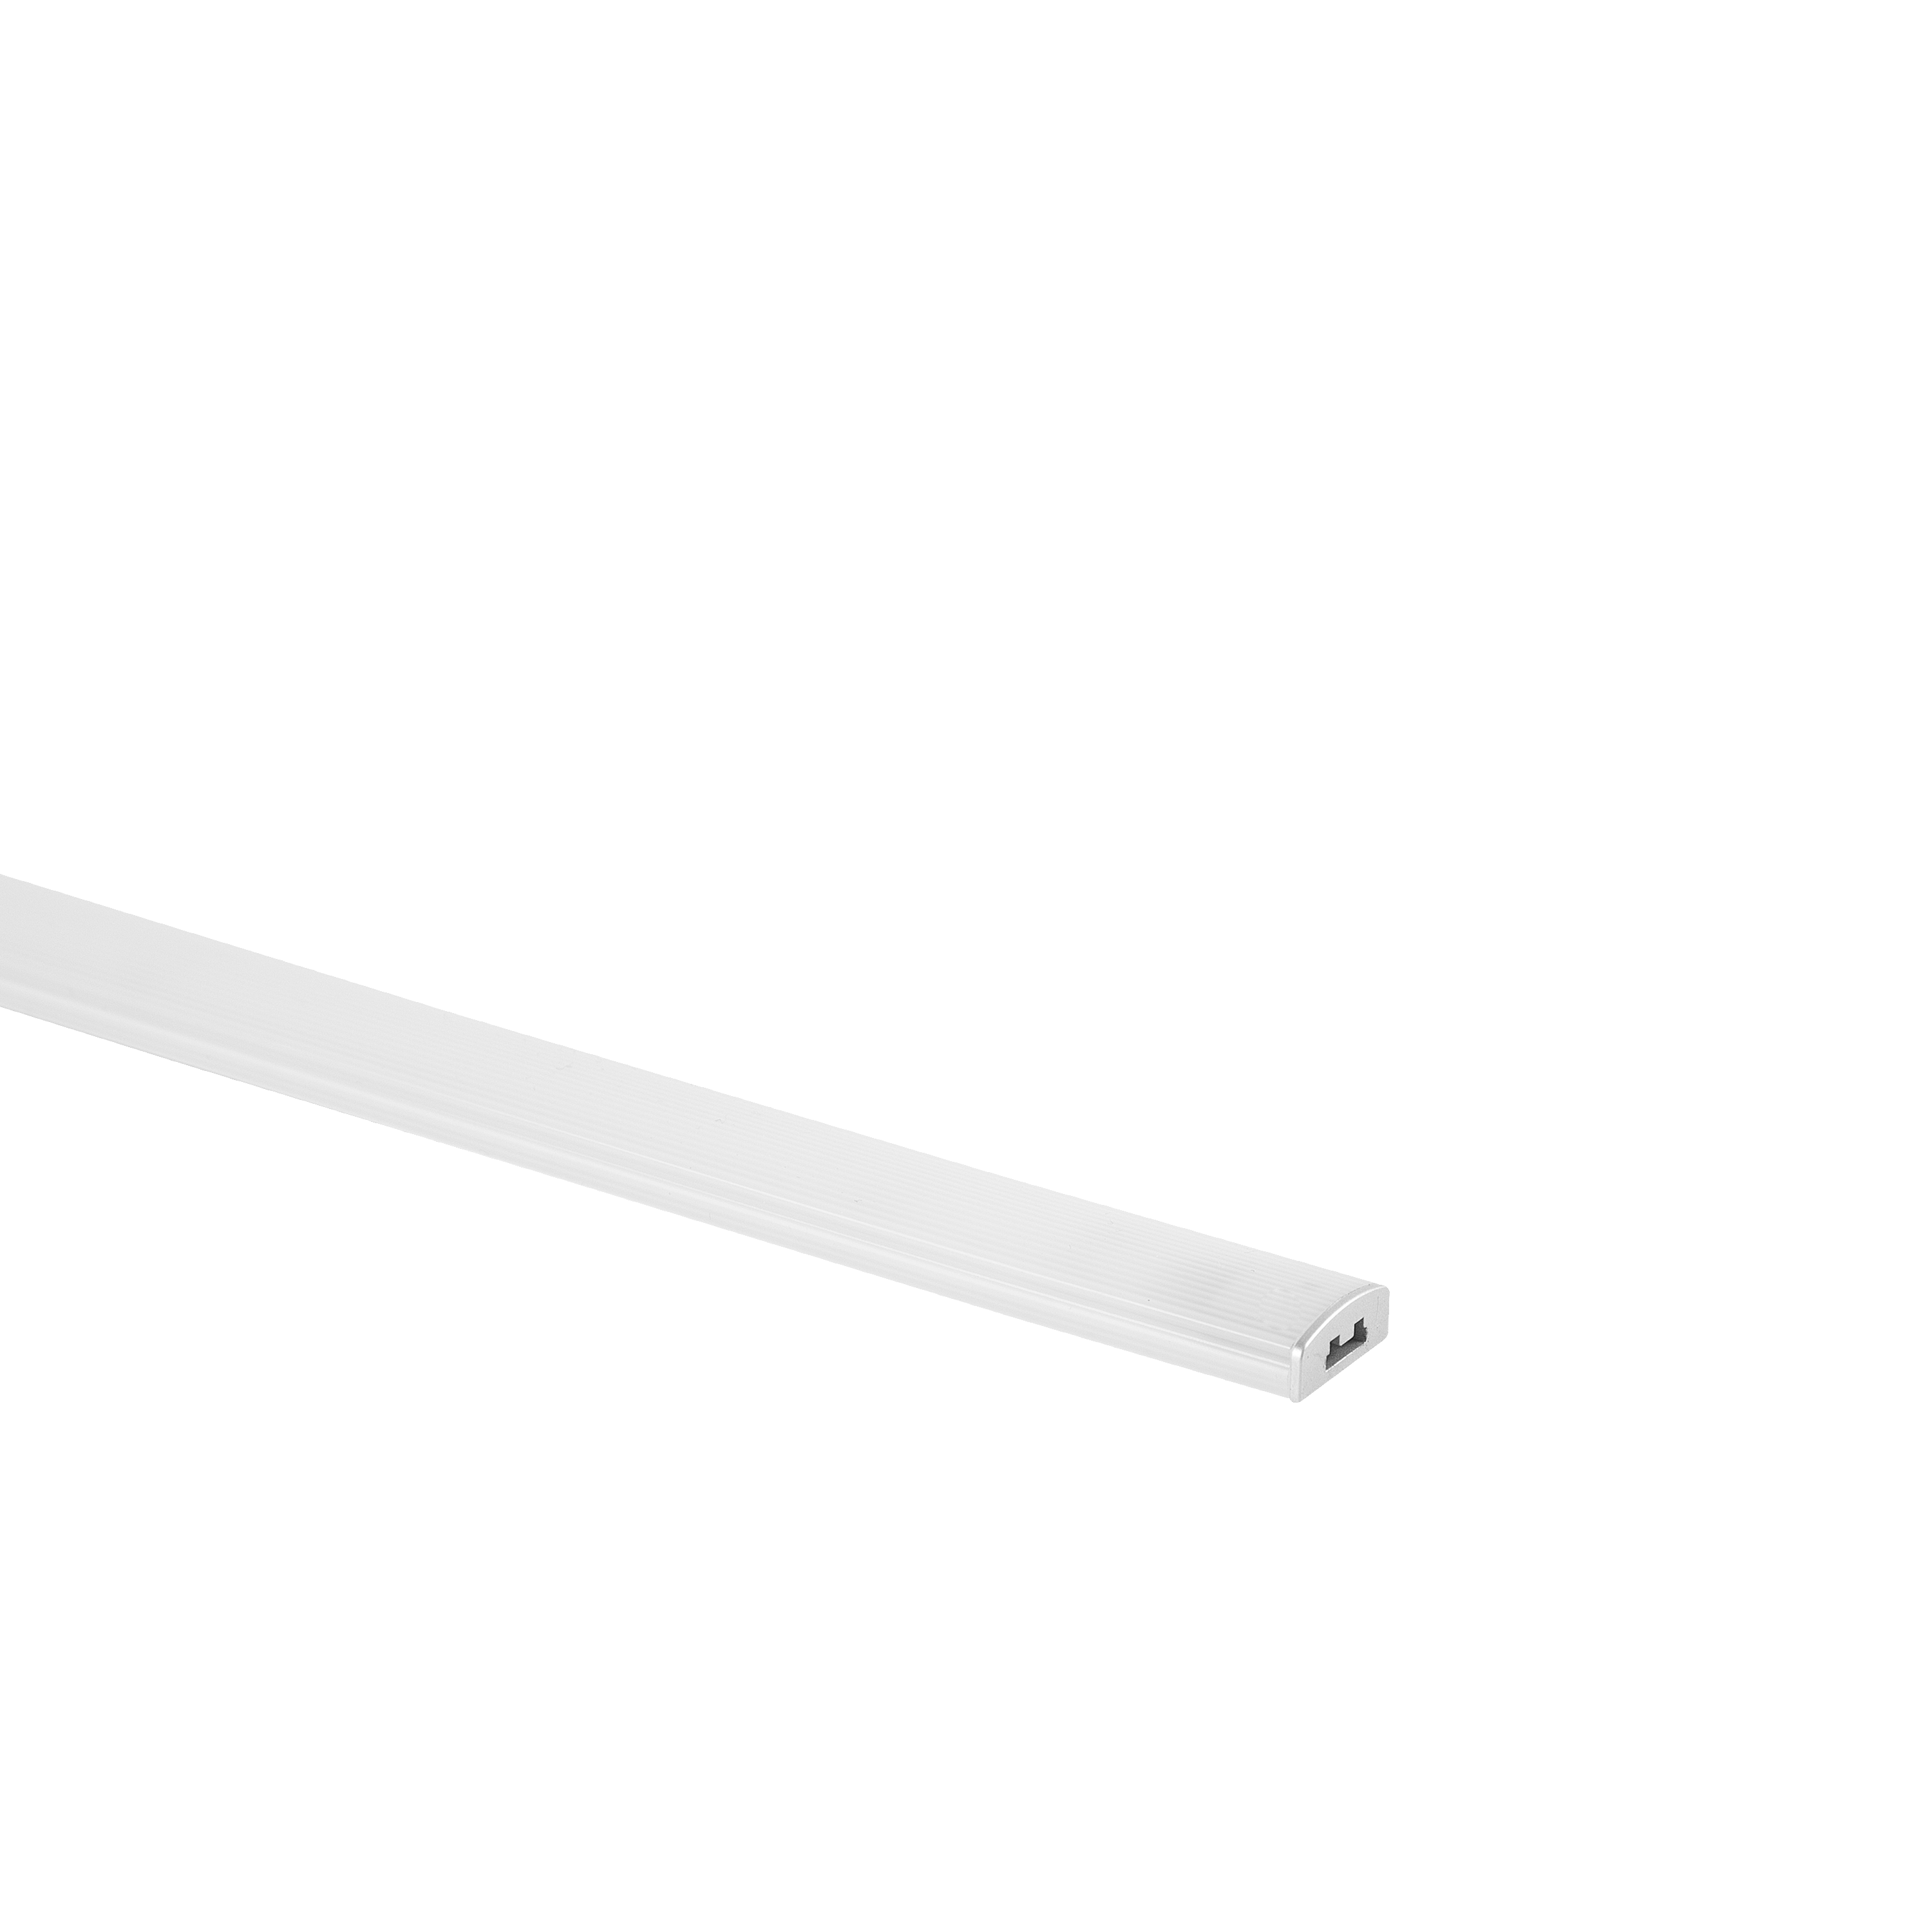 hide-a-lite Led-profiili hide-a-lite led link 70 3000k